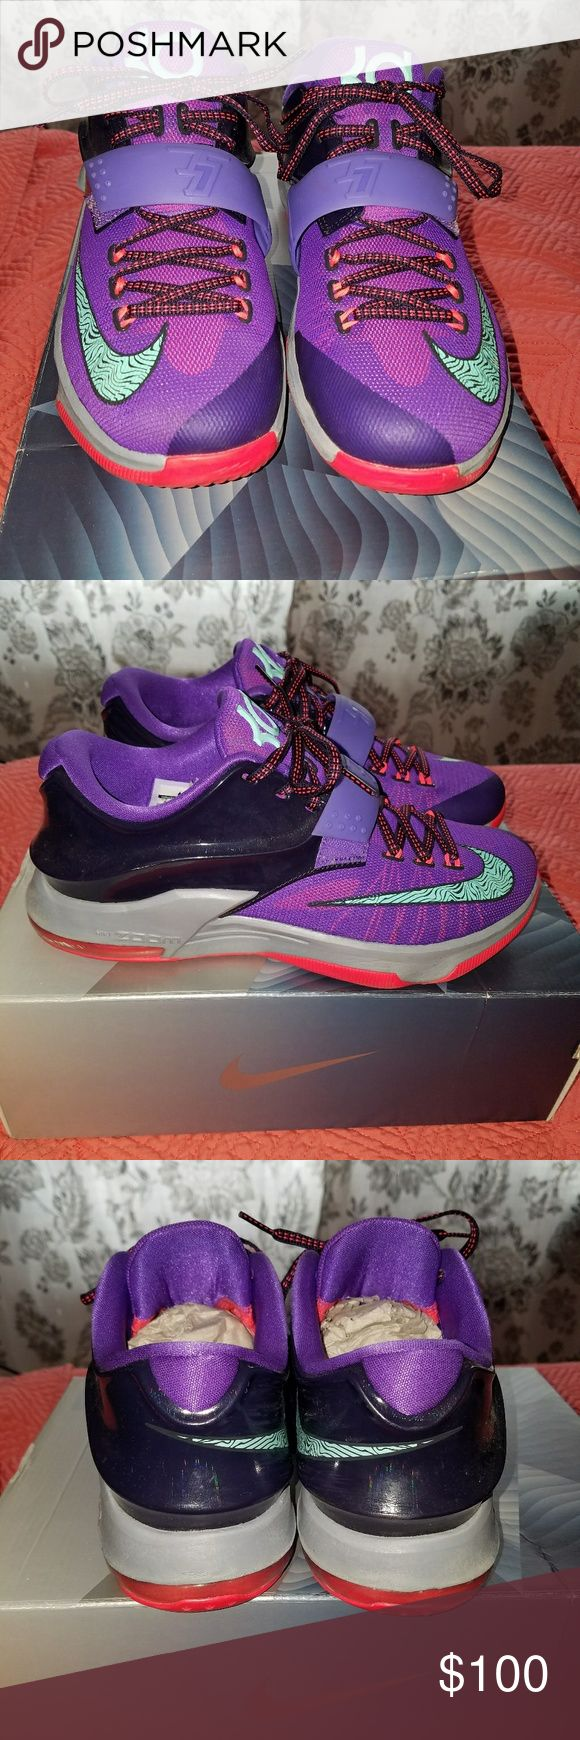 Nike Kevin Durant KD 7 Cave Purple Men's Size 8 Nike Kevin Durant KD 7 Cave Purple Basketball shoes Used but like new condition, only worn a handful of times 100% authentic  Men's size 8 Nike Shoes Sneakers